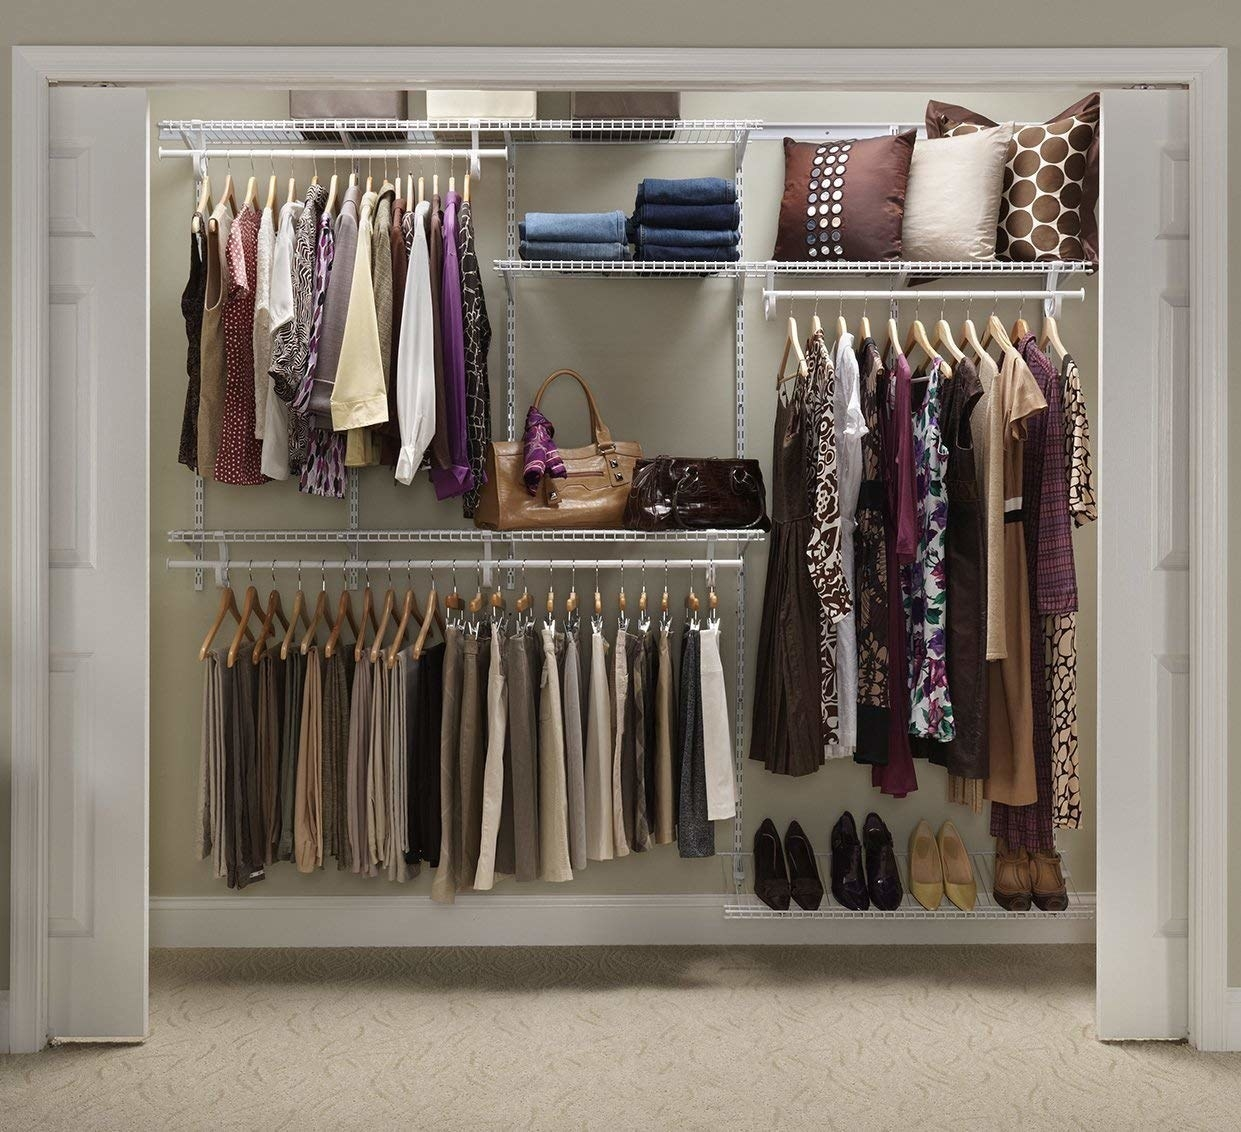 Organized closet with neatly-arranged hanging clothes, shoes, and bags